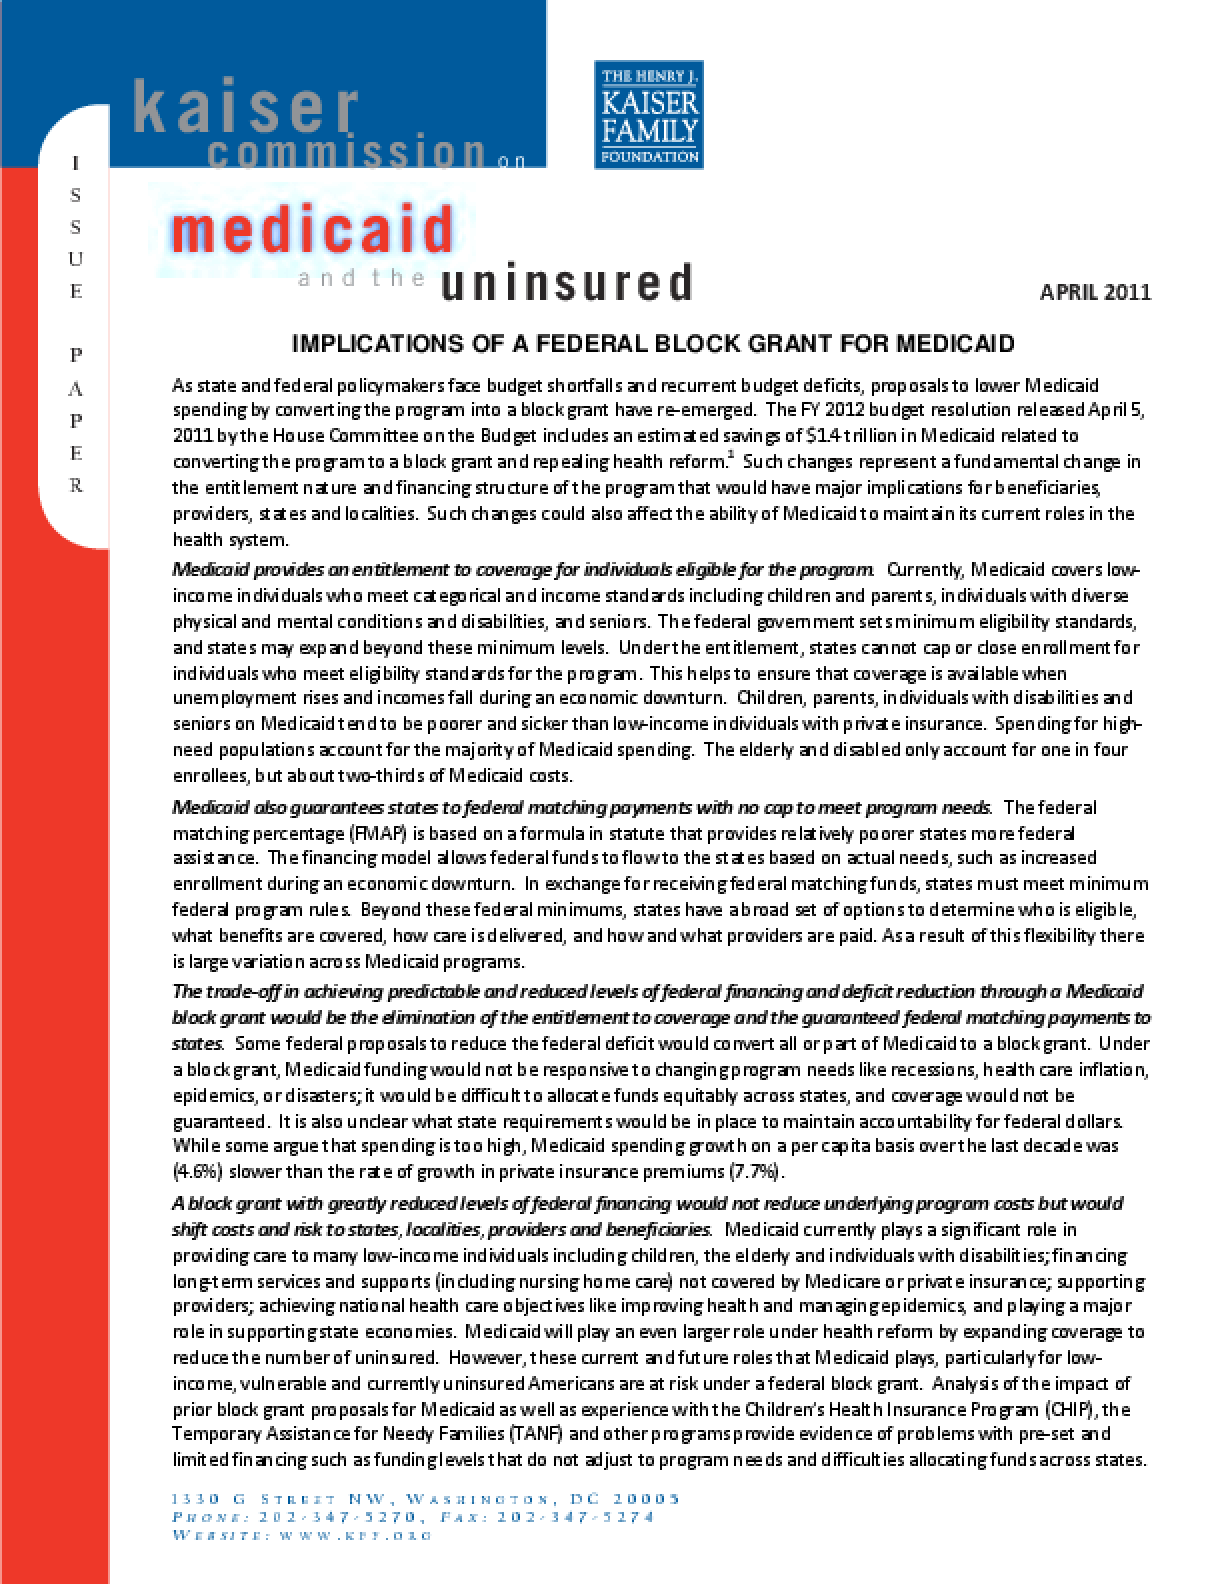 Implications of a Federal Block Grant for Medicaid